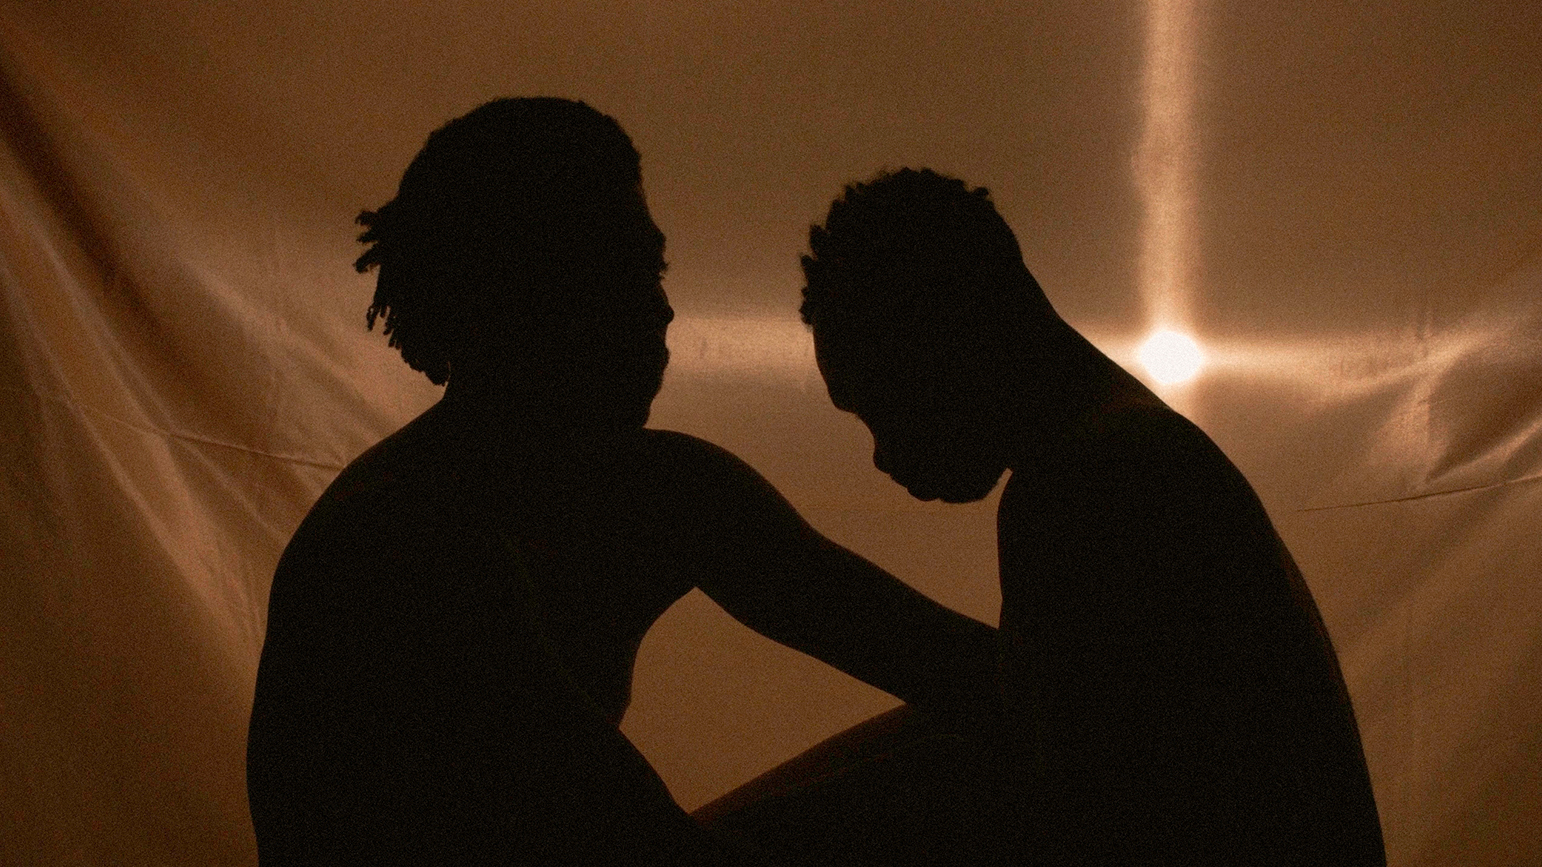 Image of two silhouettes sitting facing one another against a backlit gold cloth